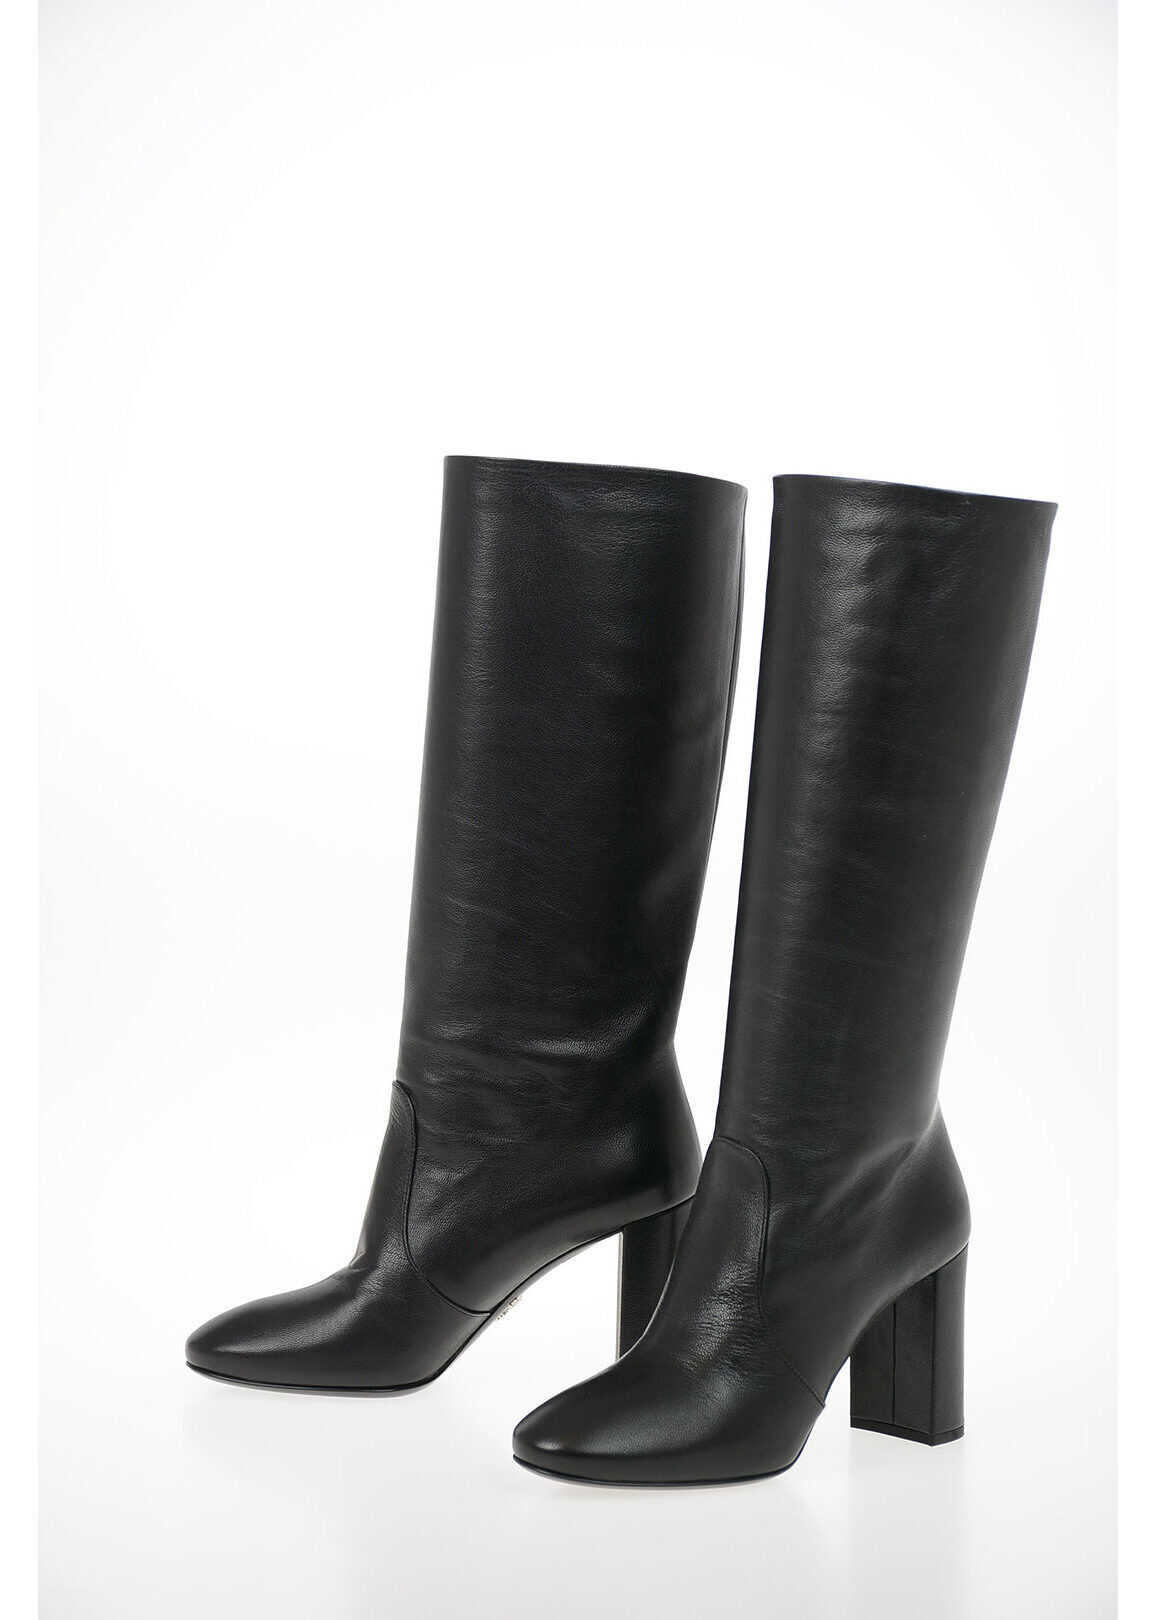 Prada Leather Pull On Boots with Squared Heel 8 cm BLACK imagine b-mall.ro